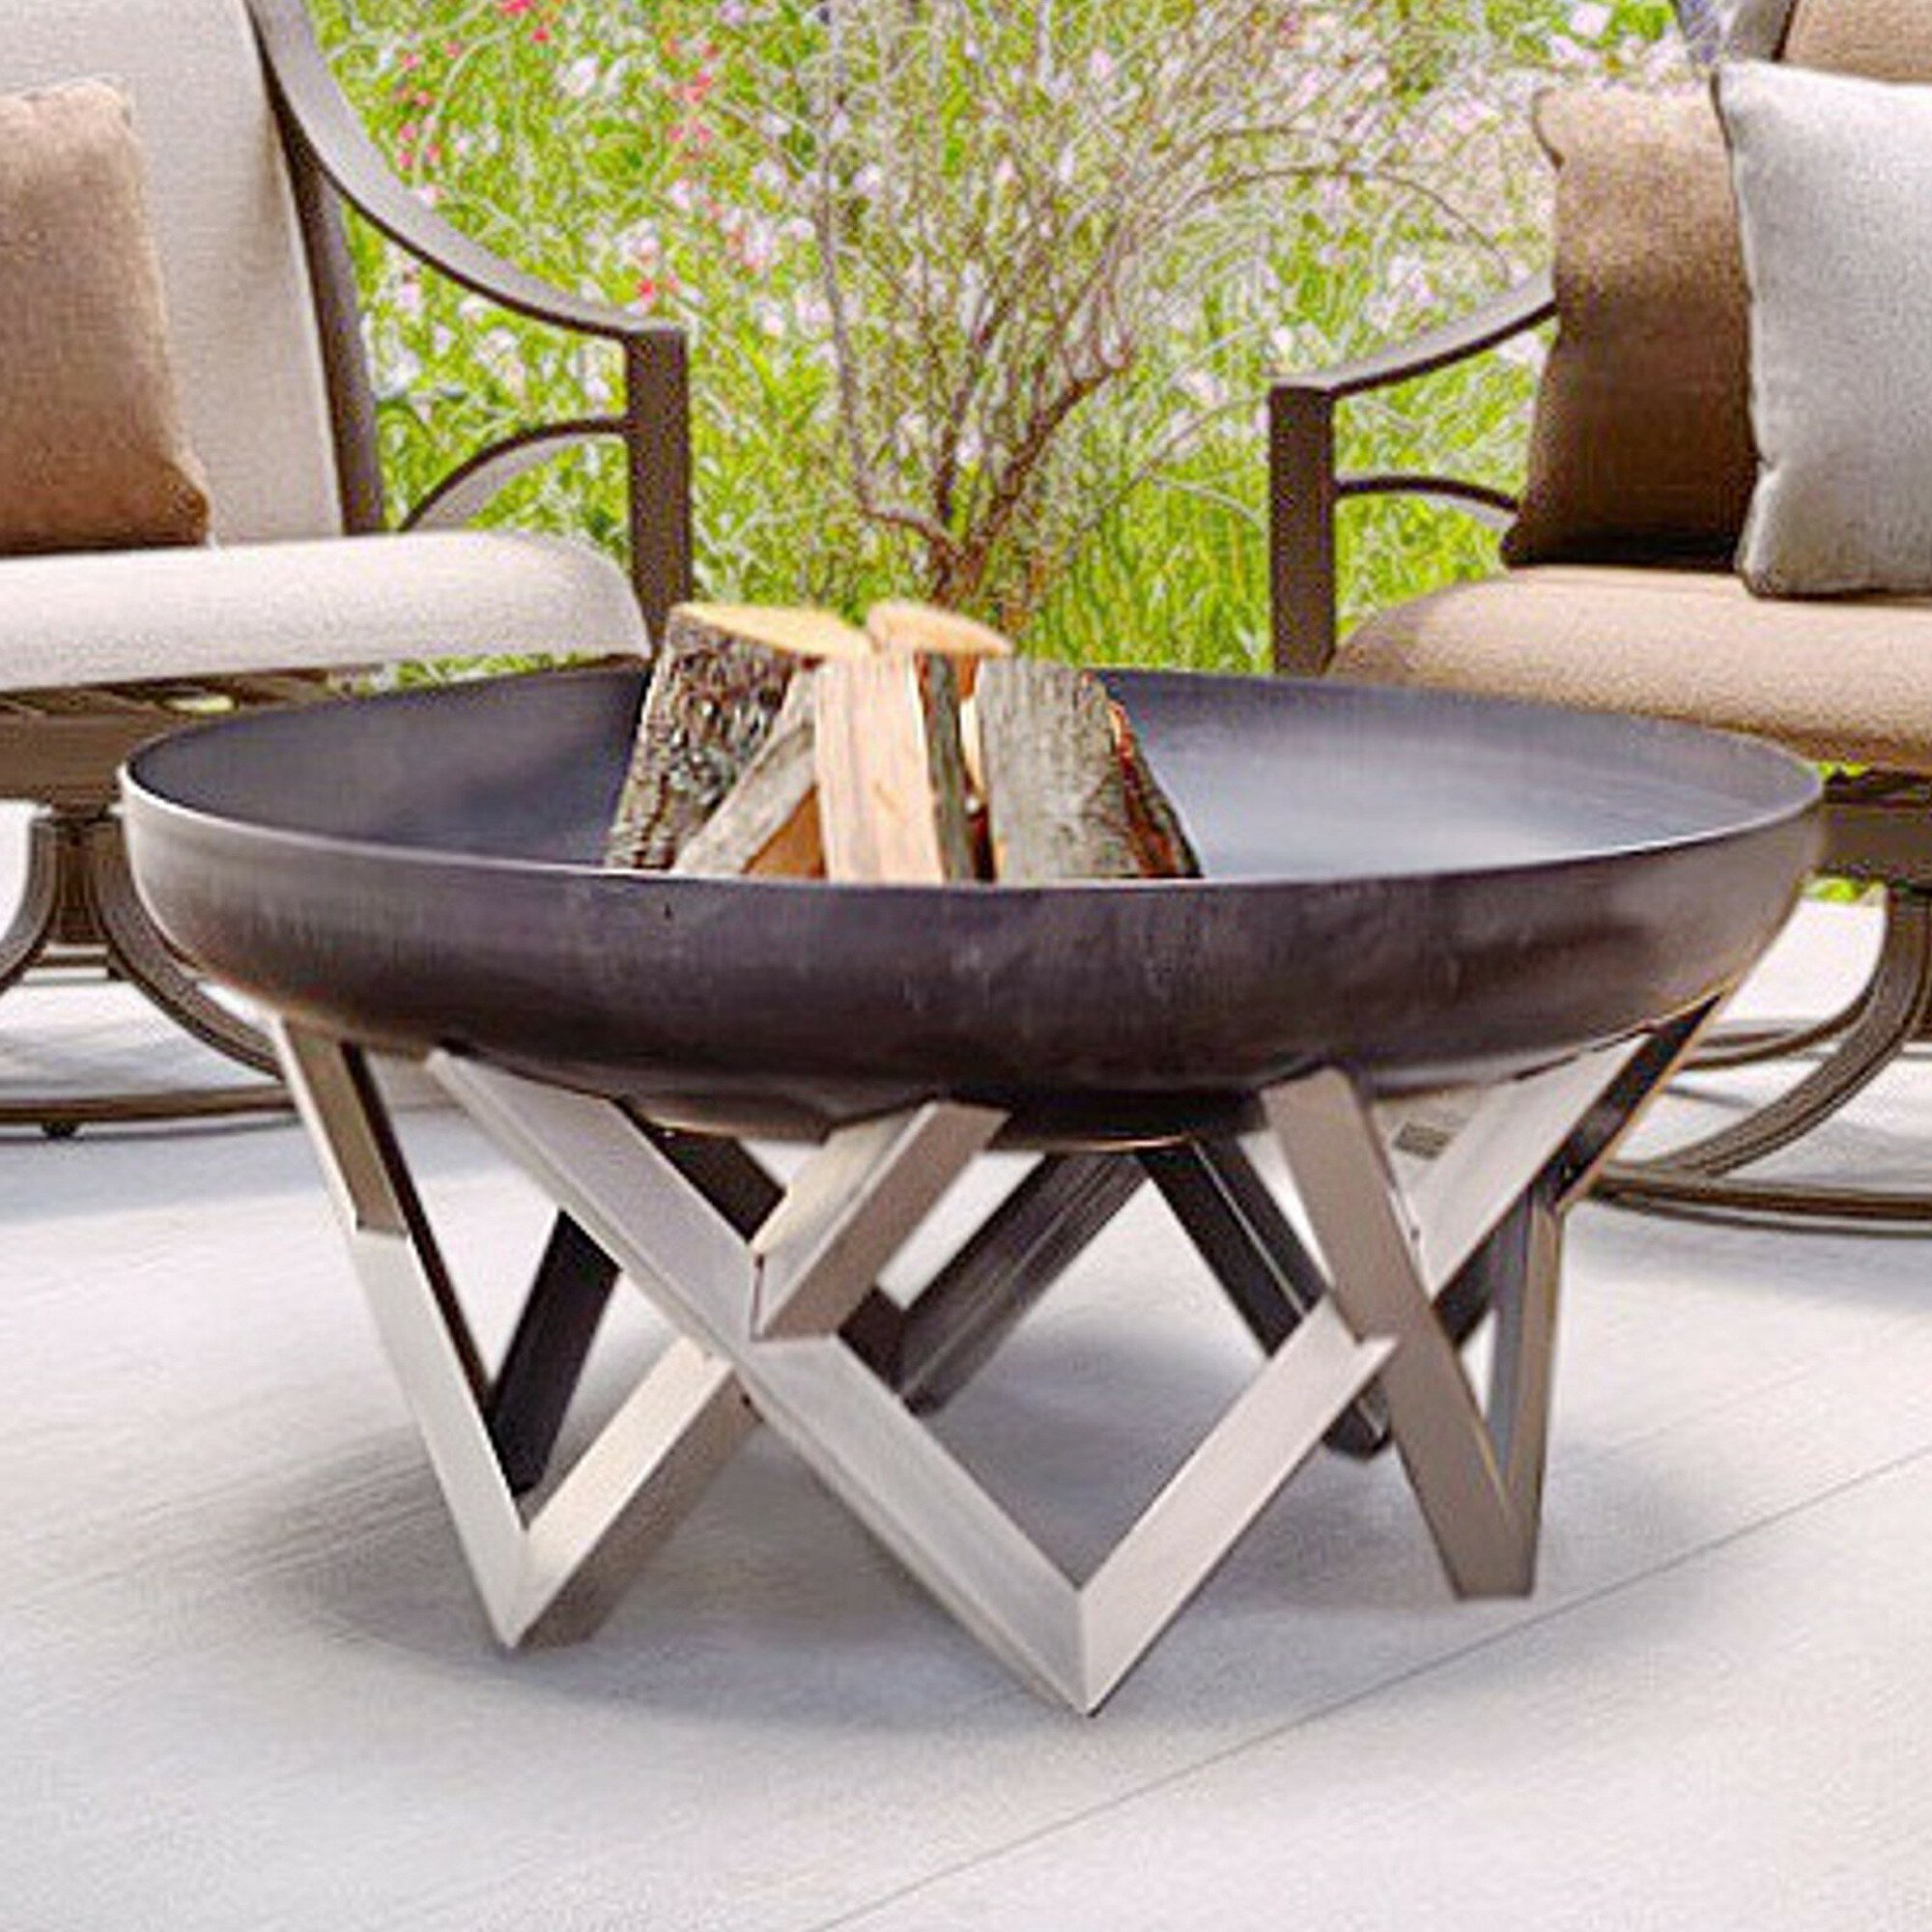 Image of: Wrought Studio Corsica Stainless Steel Wood Burning Fire Pit Wayfair